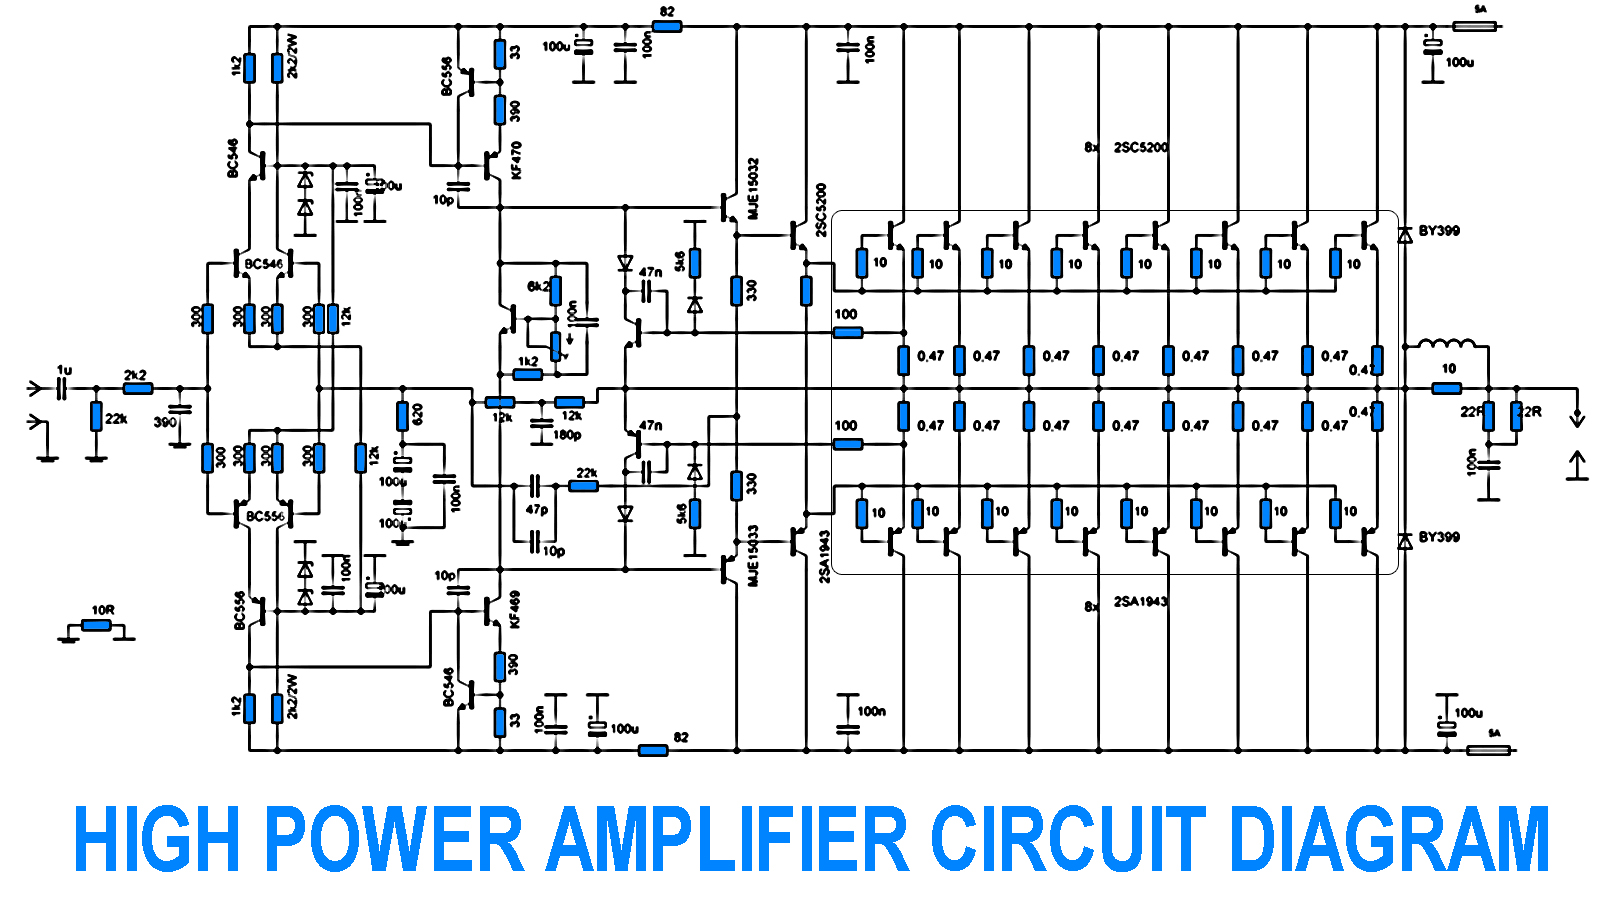 2sc5200 2sa1943 amplifier circuit 700w power amplifier with 2sc5200 2sa1943 2sc5200 2sa1943 amplifier circuit [ 1600 x 905 Pixel ]